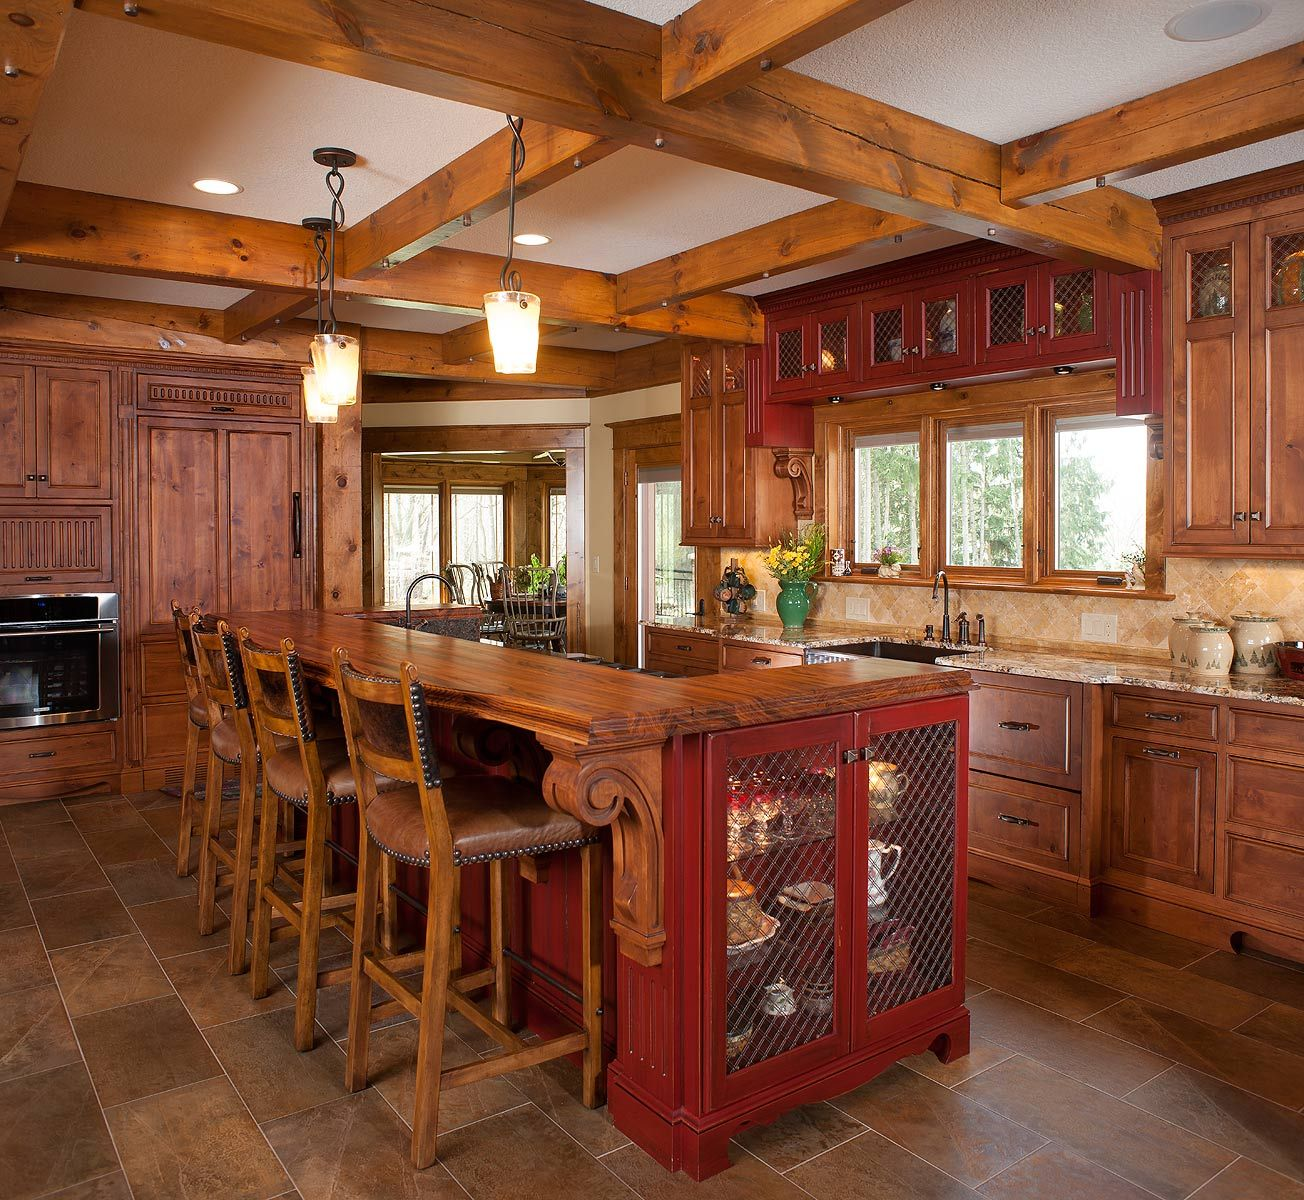 Amazing Rustic Kitchen Island Diy Ideas 26: 15 Interesting Rustic Kitchen Designs